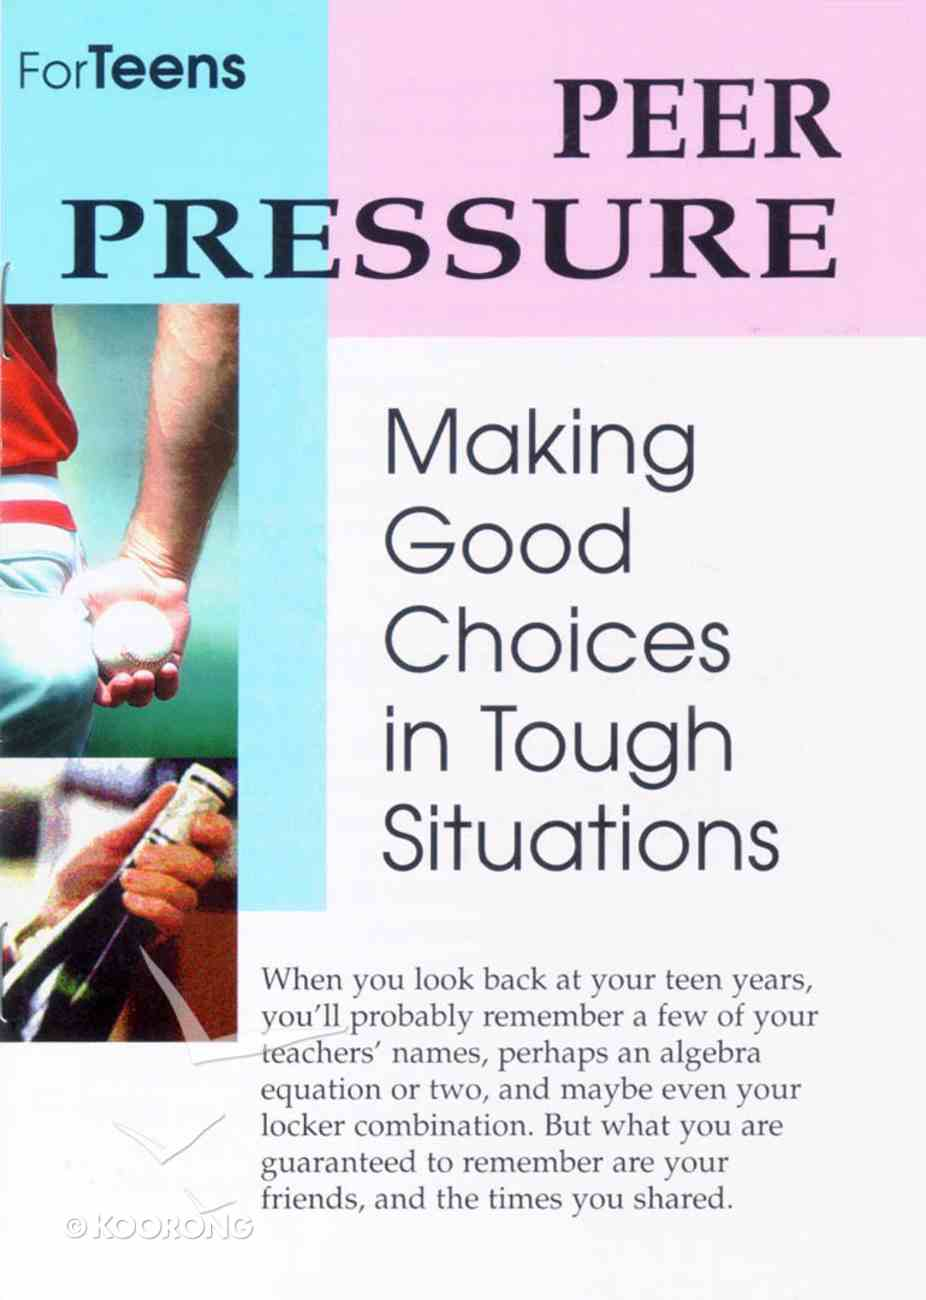 Peer Pressure Making Good Choices in Tough Situations (Singles) (Teen Care Notes Series) Paperback